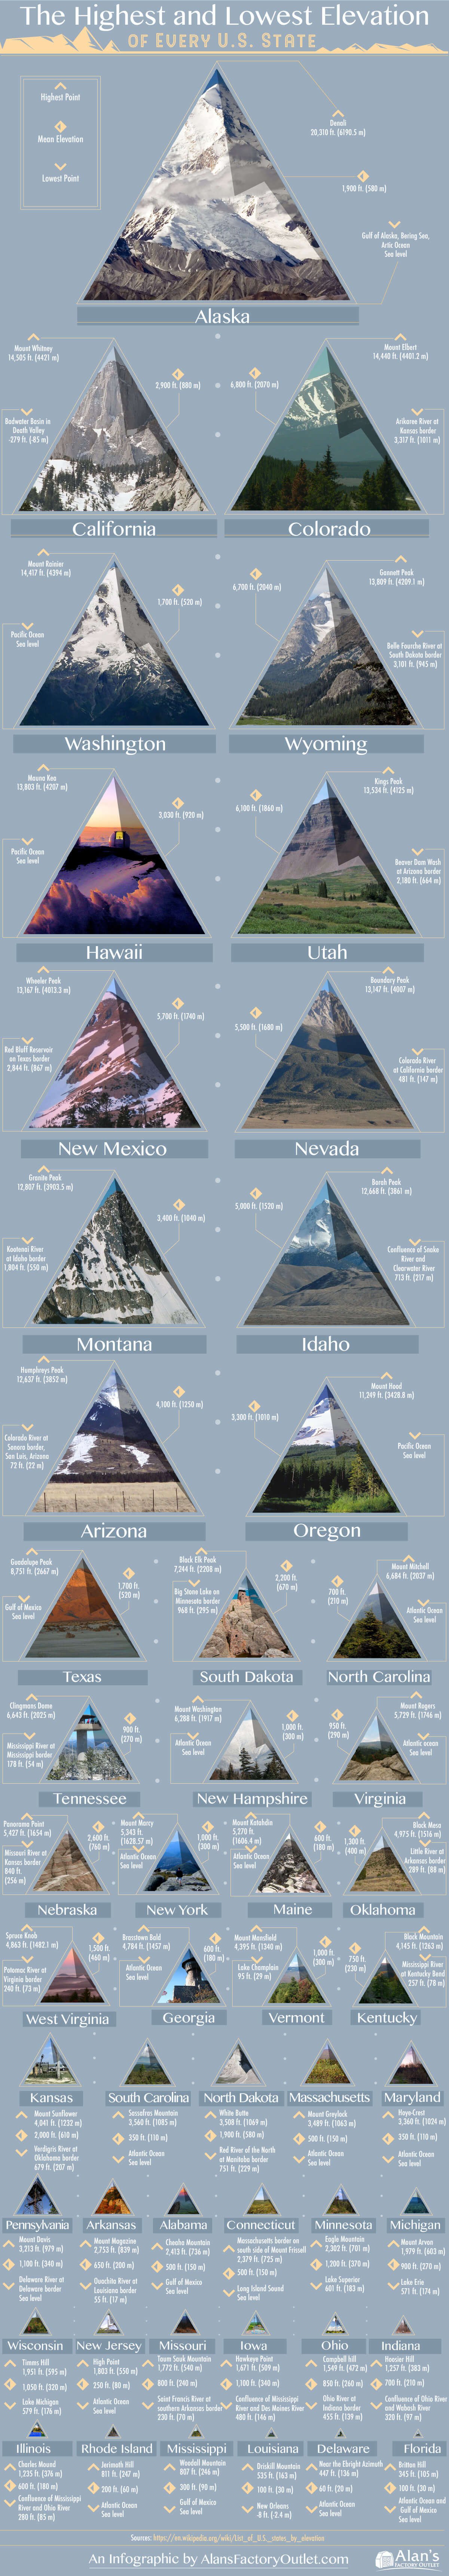 highest-lowest-elevation-of-every-state.jpg